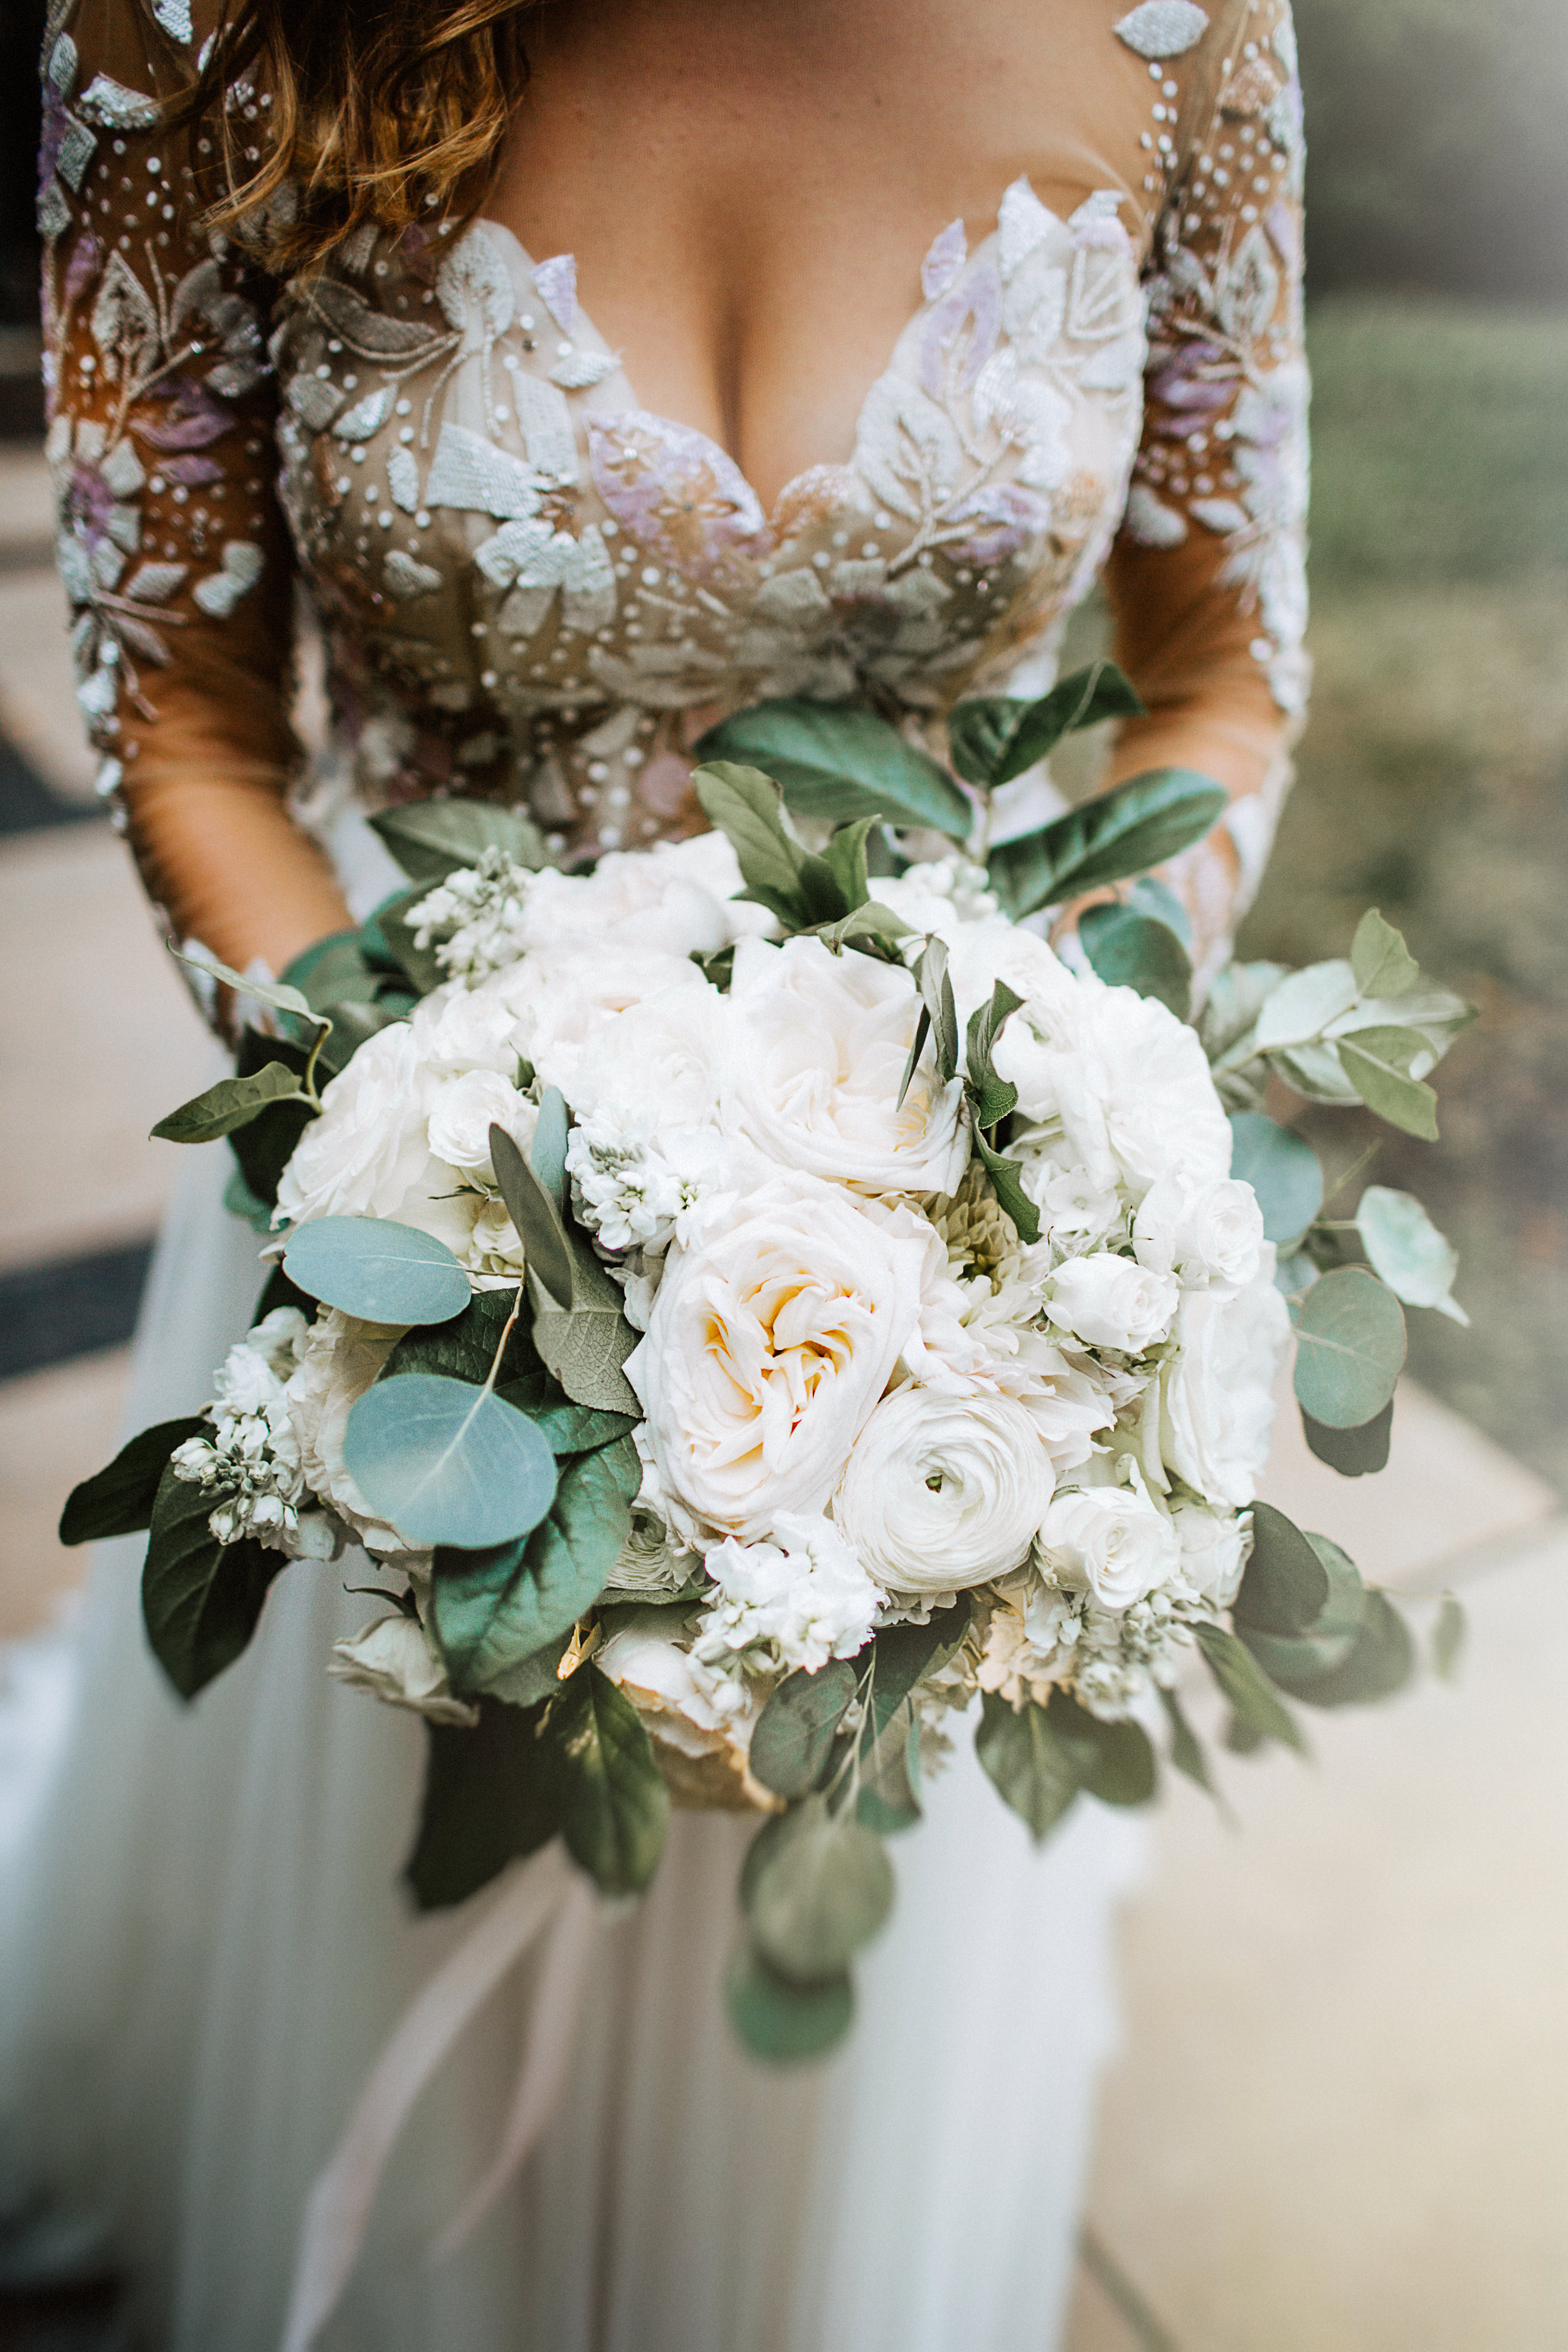 Loose Round Garden Bouquet  Style: romantic Details: white o'hara garden roses, ranunculus, stock, spray roses, mixed greenery   {Photo courtesy of    Atley + Liz Collective   }